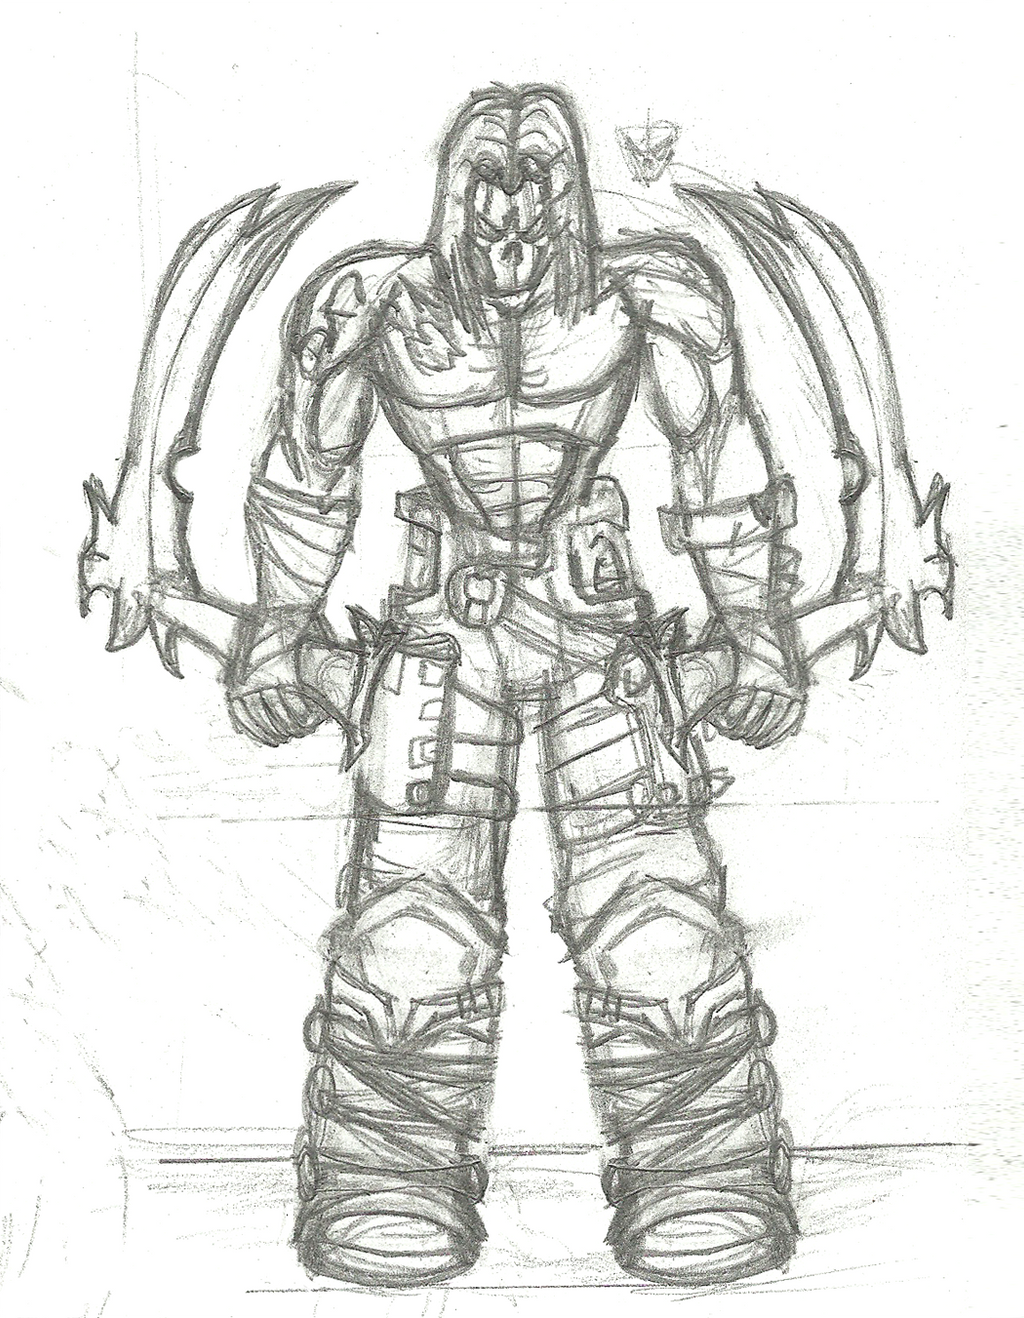 Death darksiders 2 reaper form